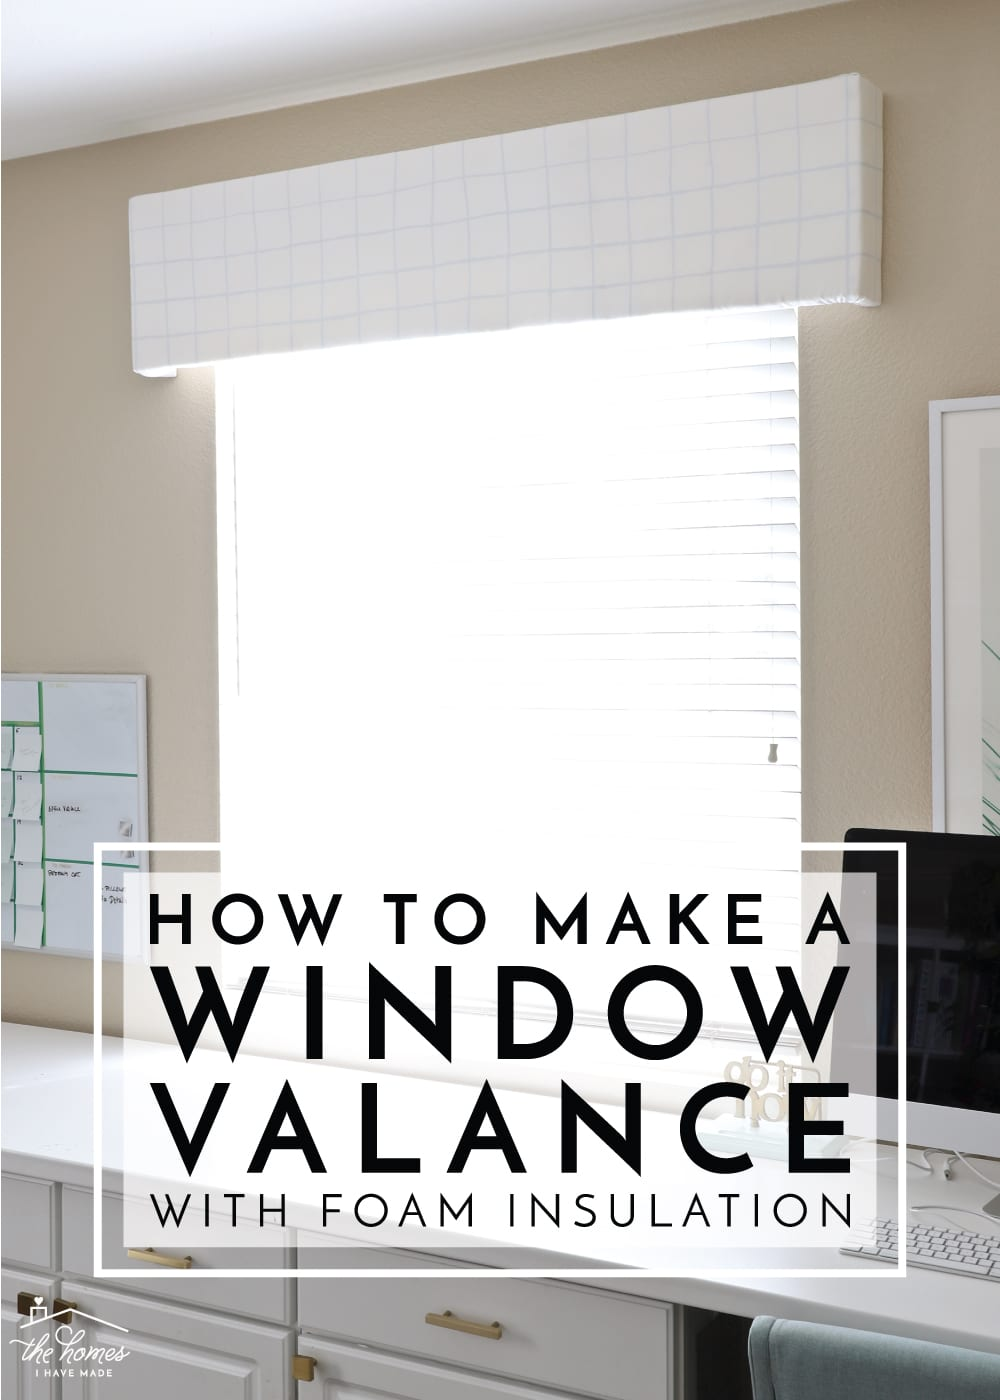 Window Valance With Foam Insulation